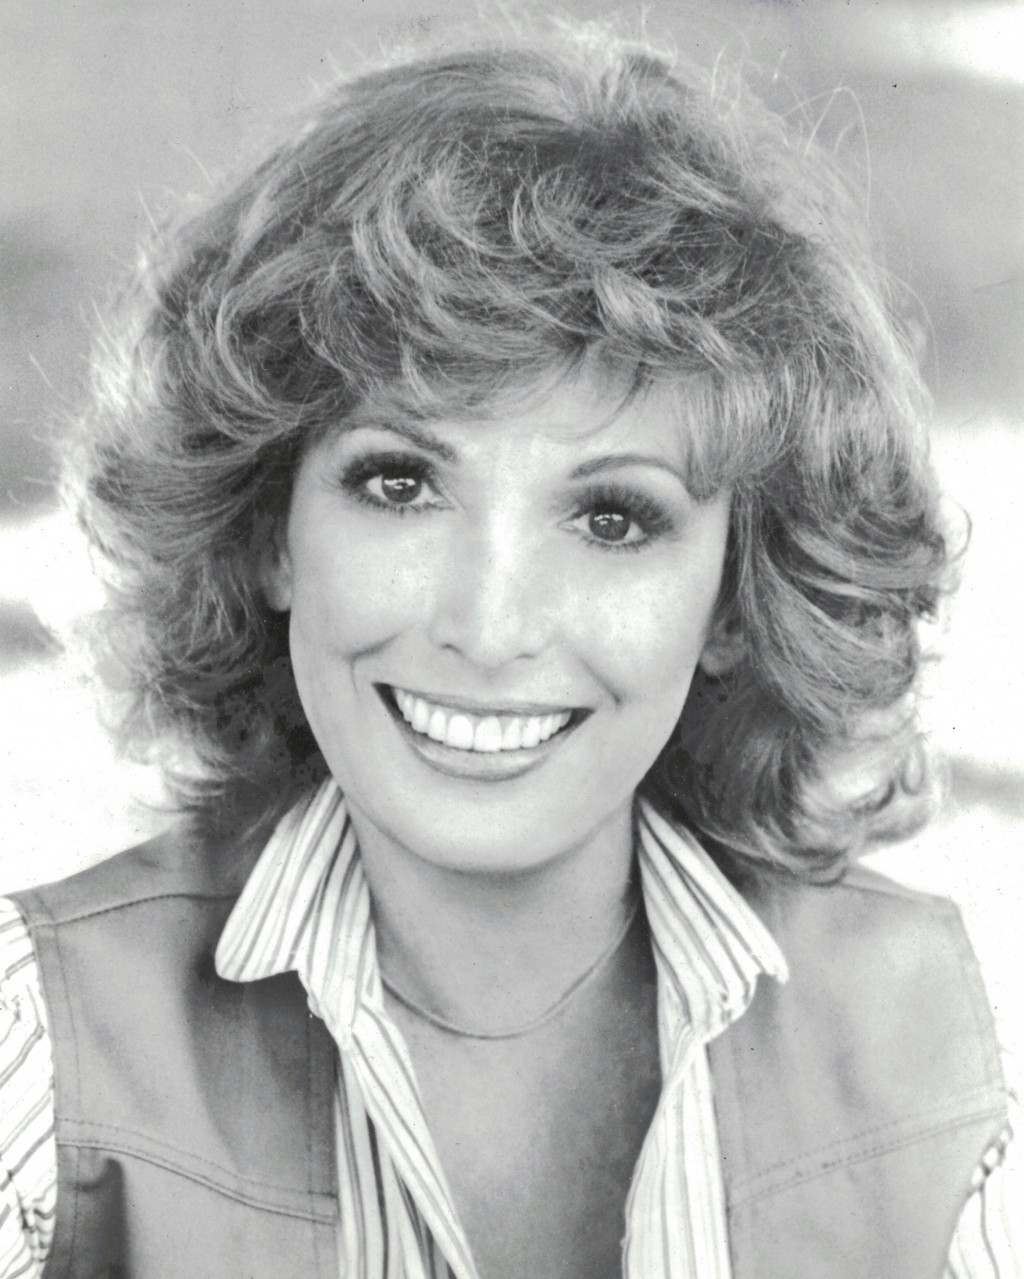 In this undated photo provided by Mark Scroggs, voice actress Julie Bennett poses for a photo. The coronavirus has claimed the lives of artists and ar...